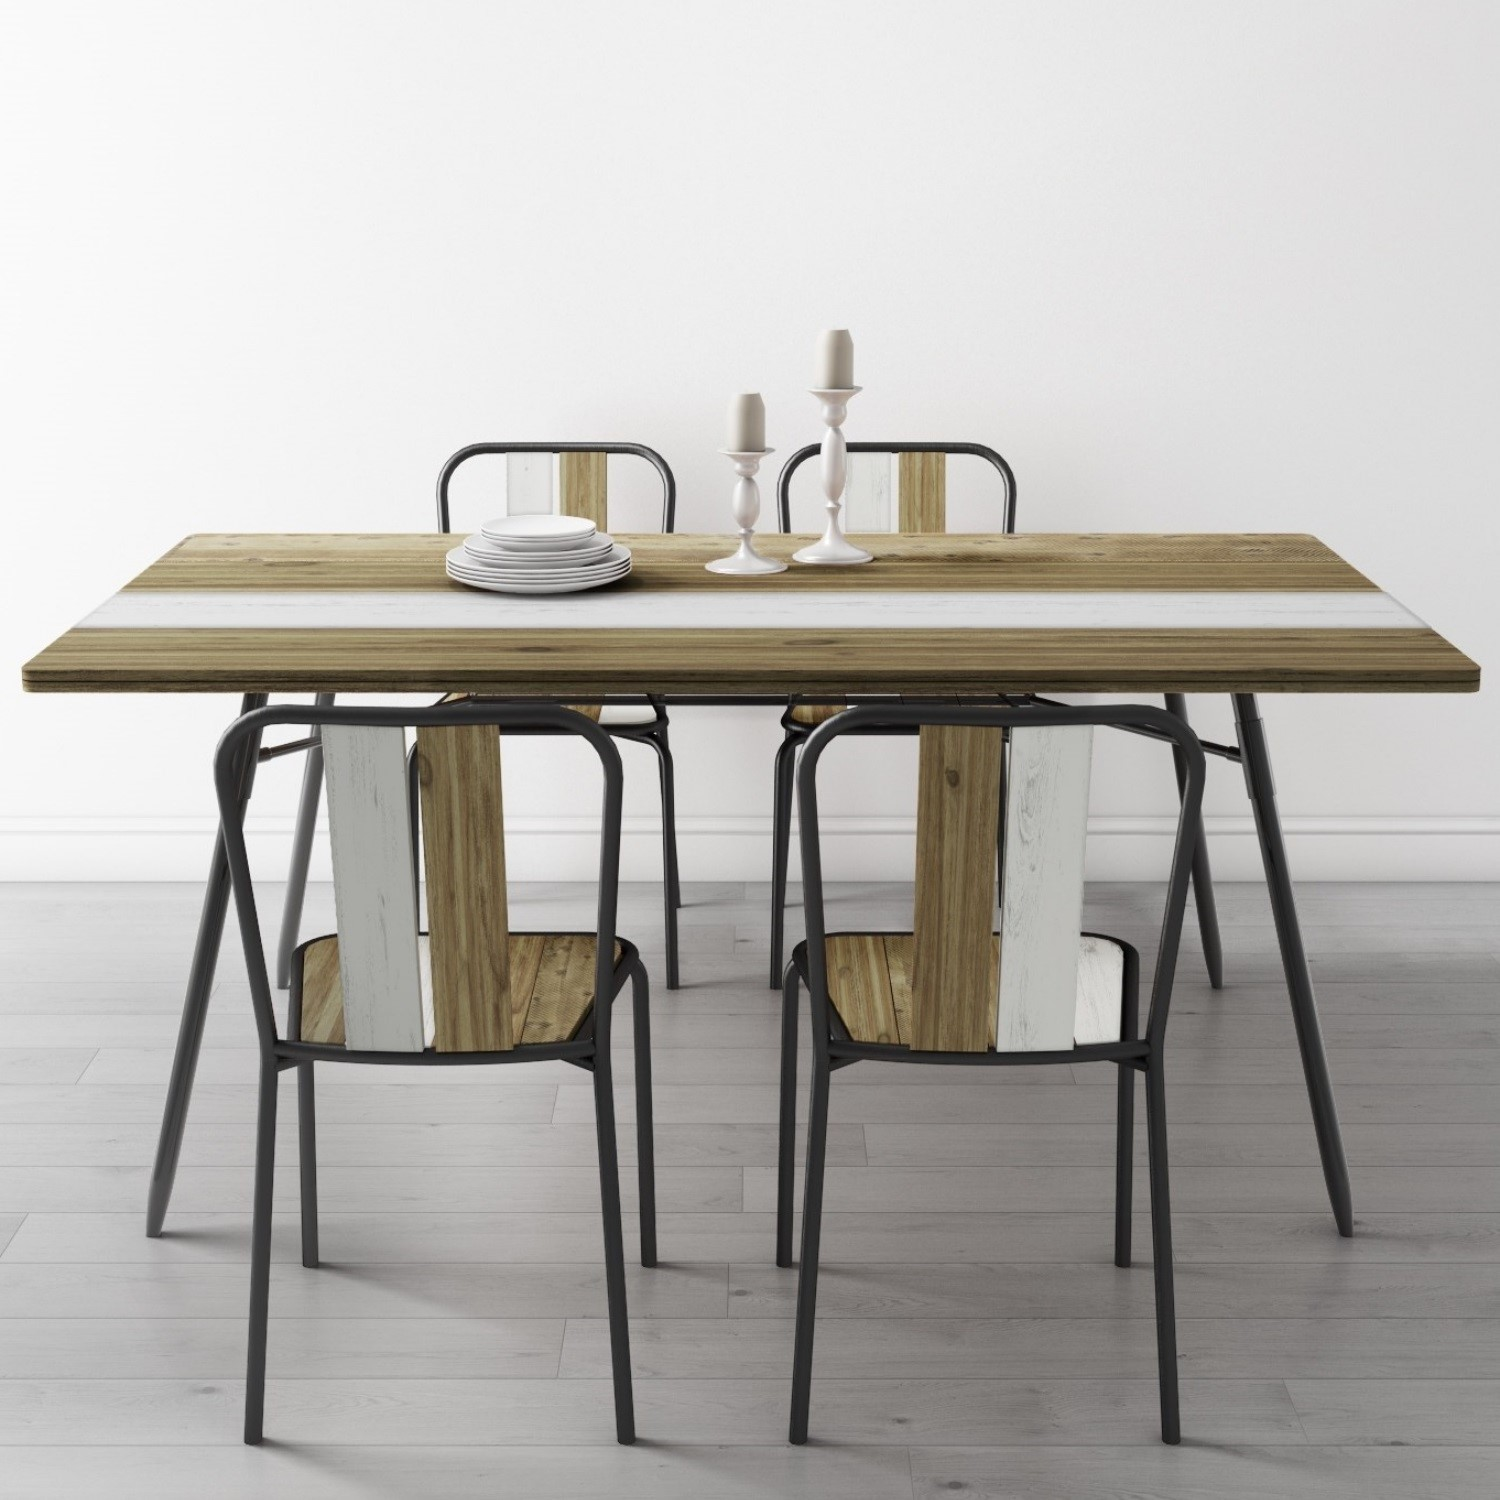 Kuta Industrial Style Reclaimed Wood Dining Table With Metal Legs